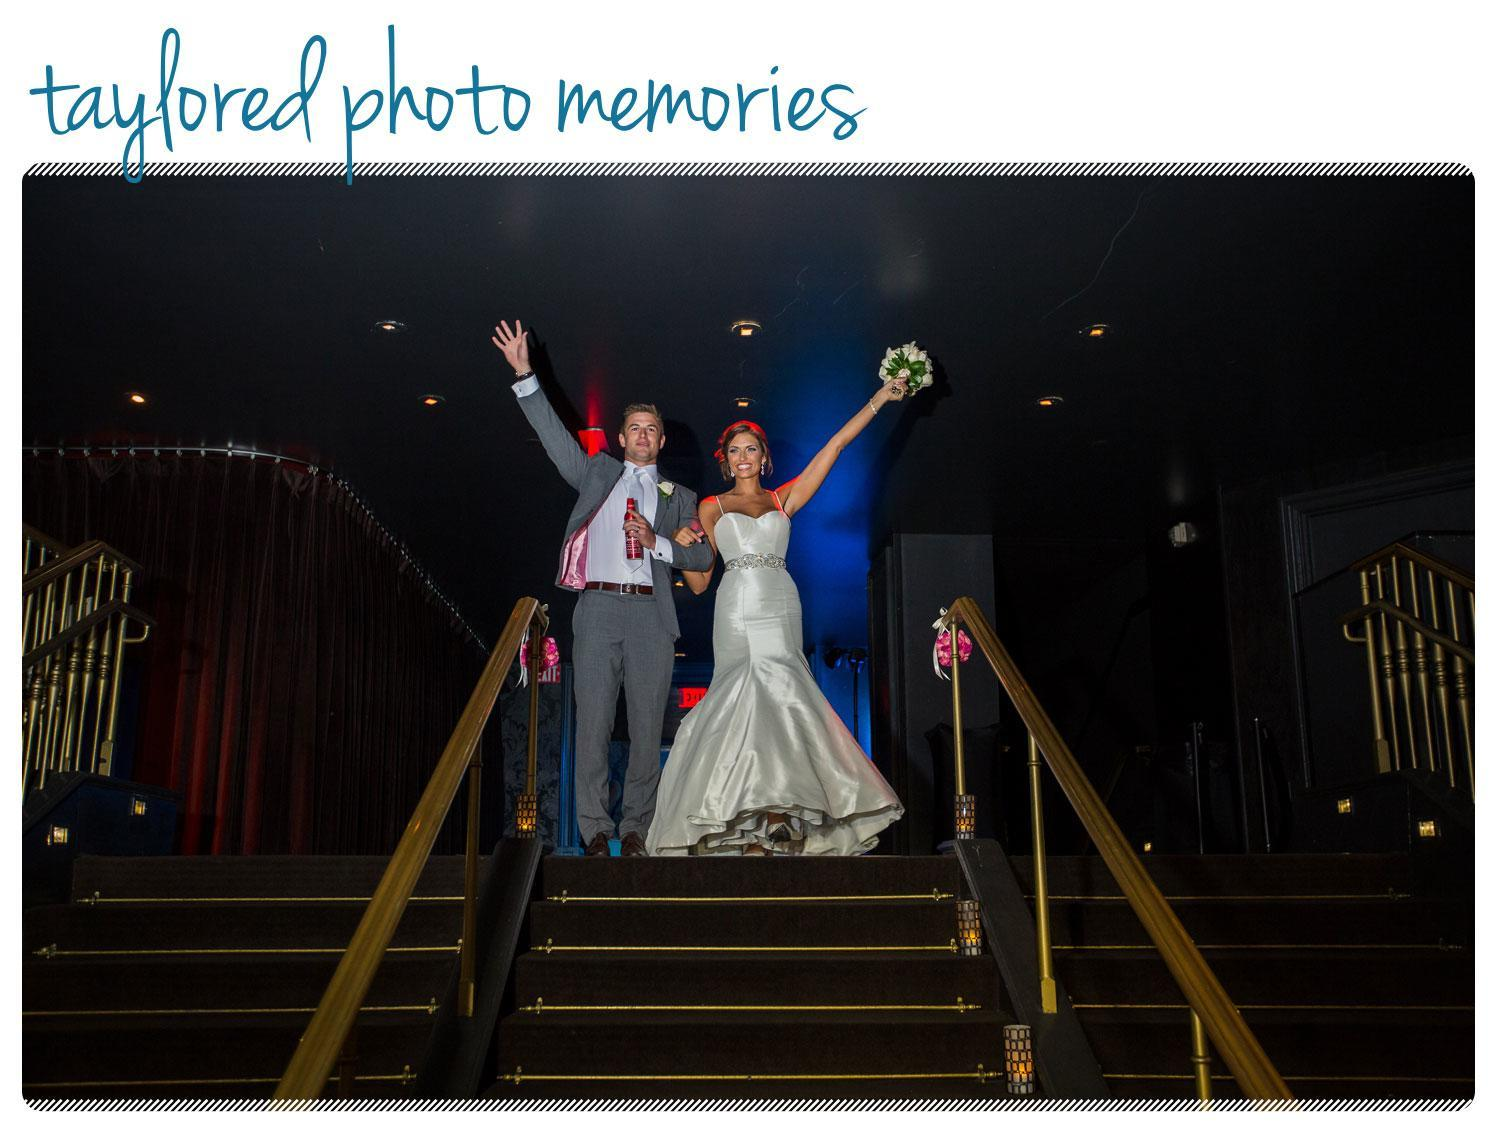 Las Vegas Wedding Photographer | Mandalay Bay Wedding in Las Vegas | Las Vegas Wedding at Hard Rock